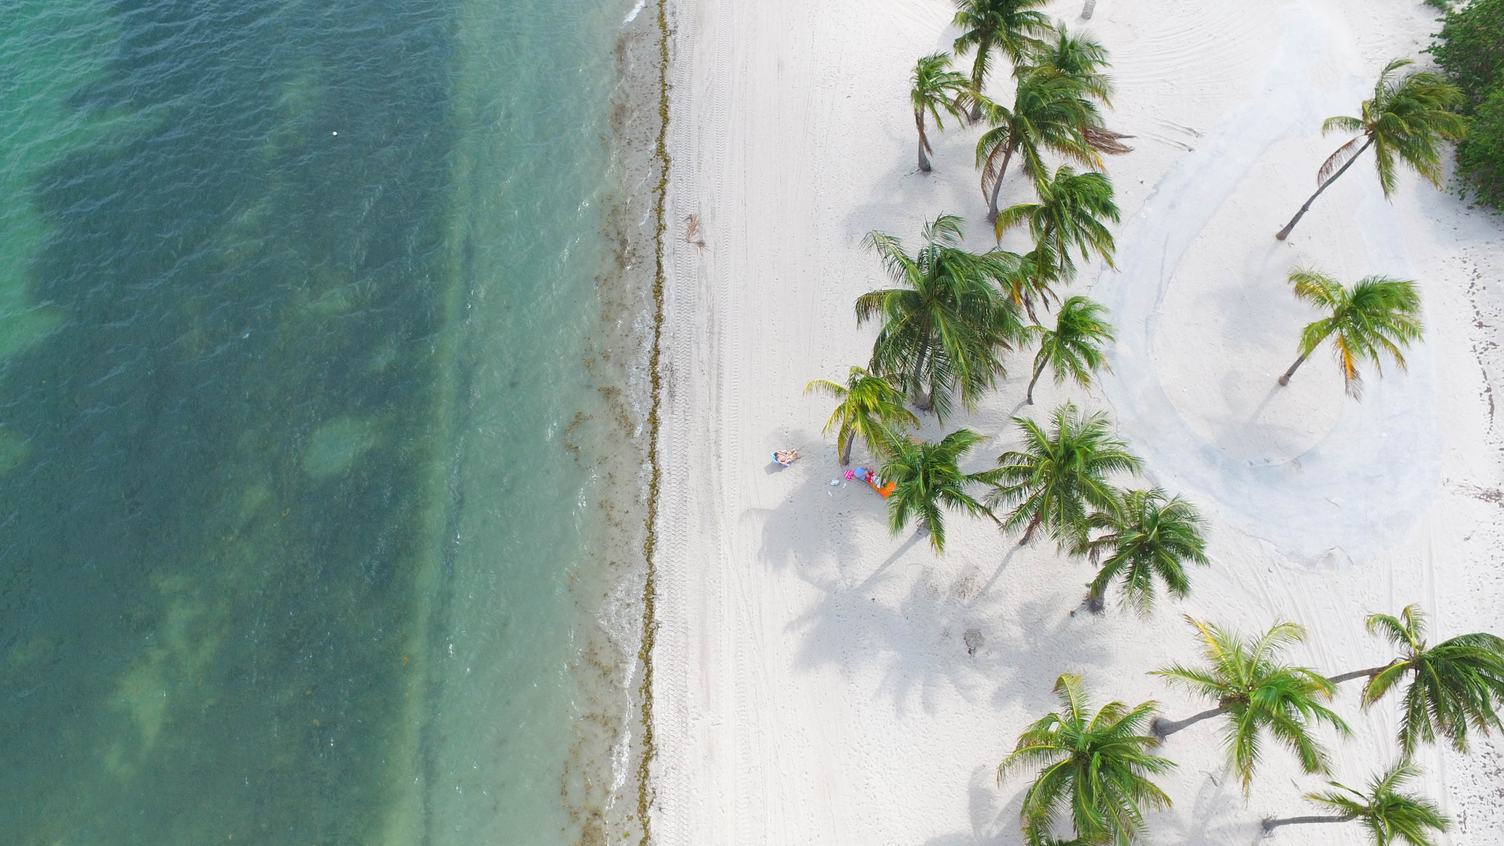 View of a Tropical Beach from Above